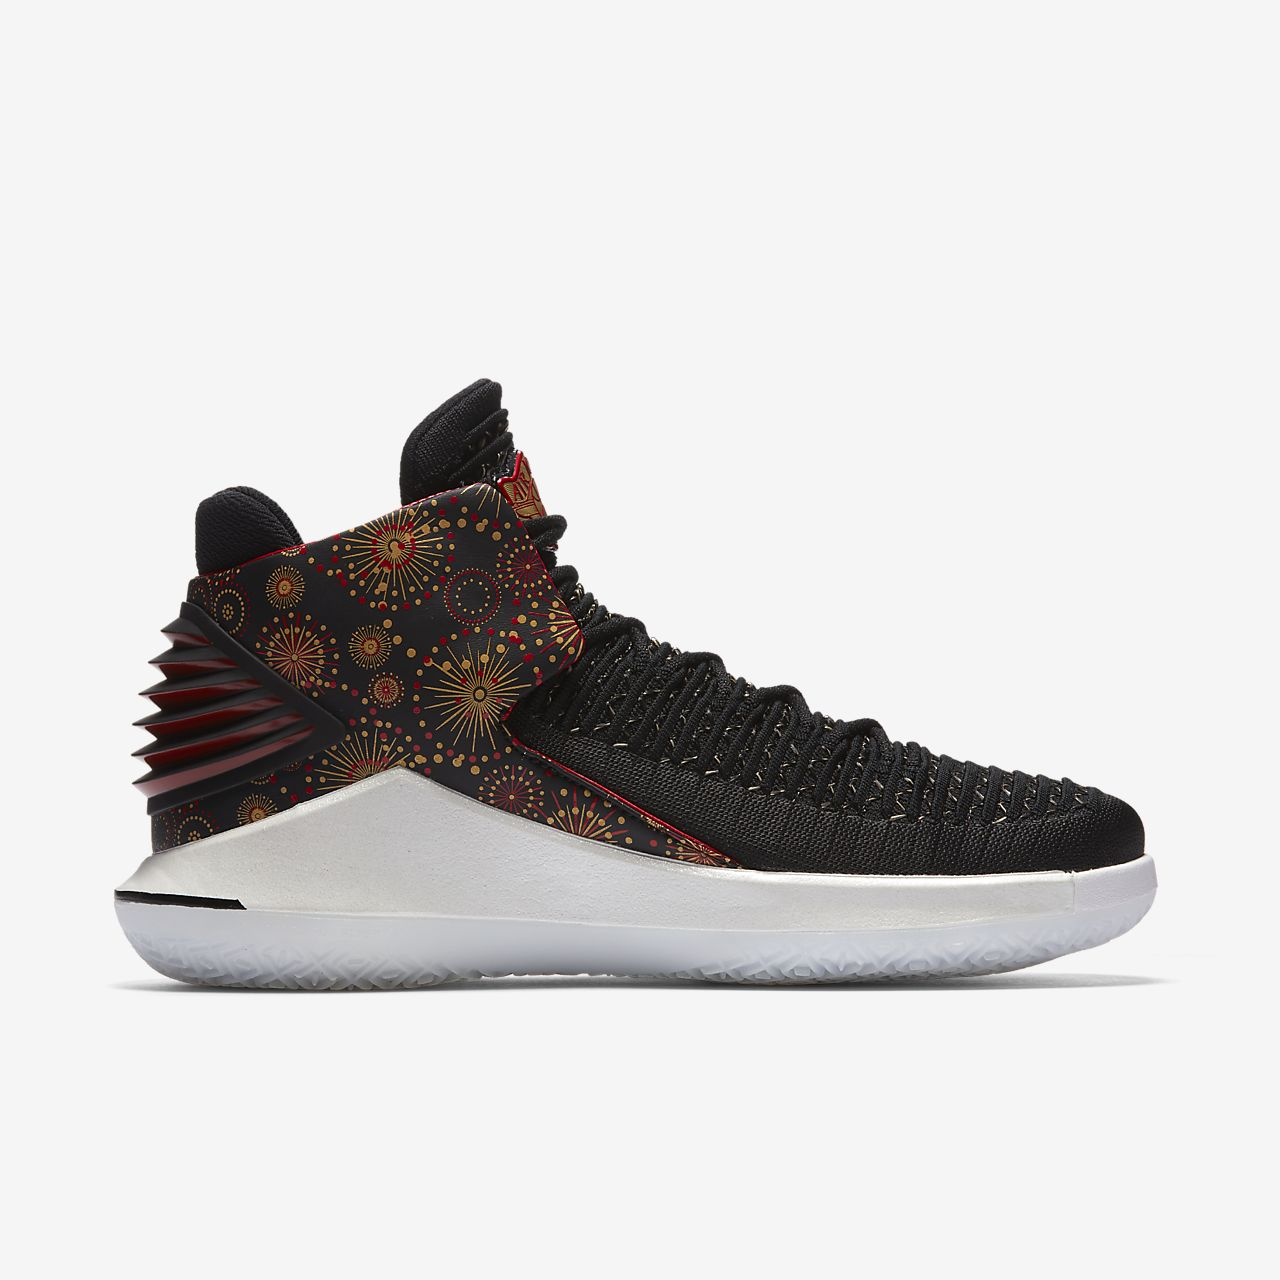 f7bee0e370f0f8 Air Jordan XXXII  Chinese New Year  Men s Basketball Shoe. Nike.com VN